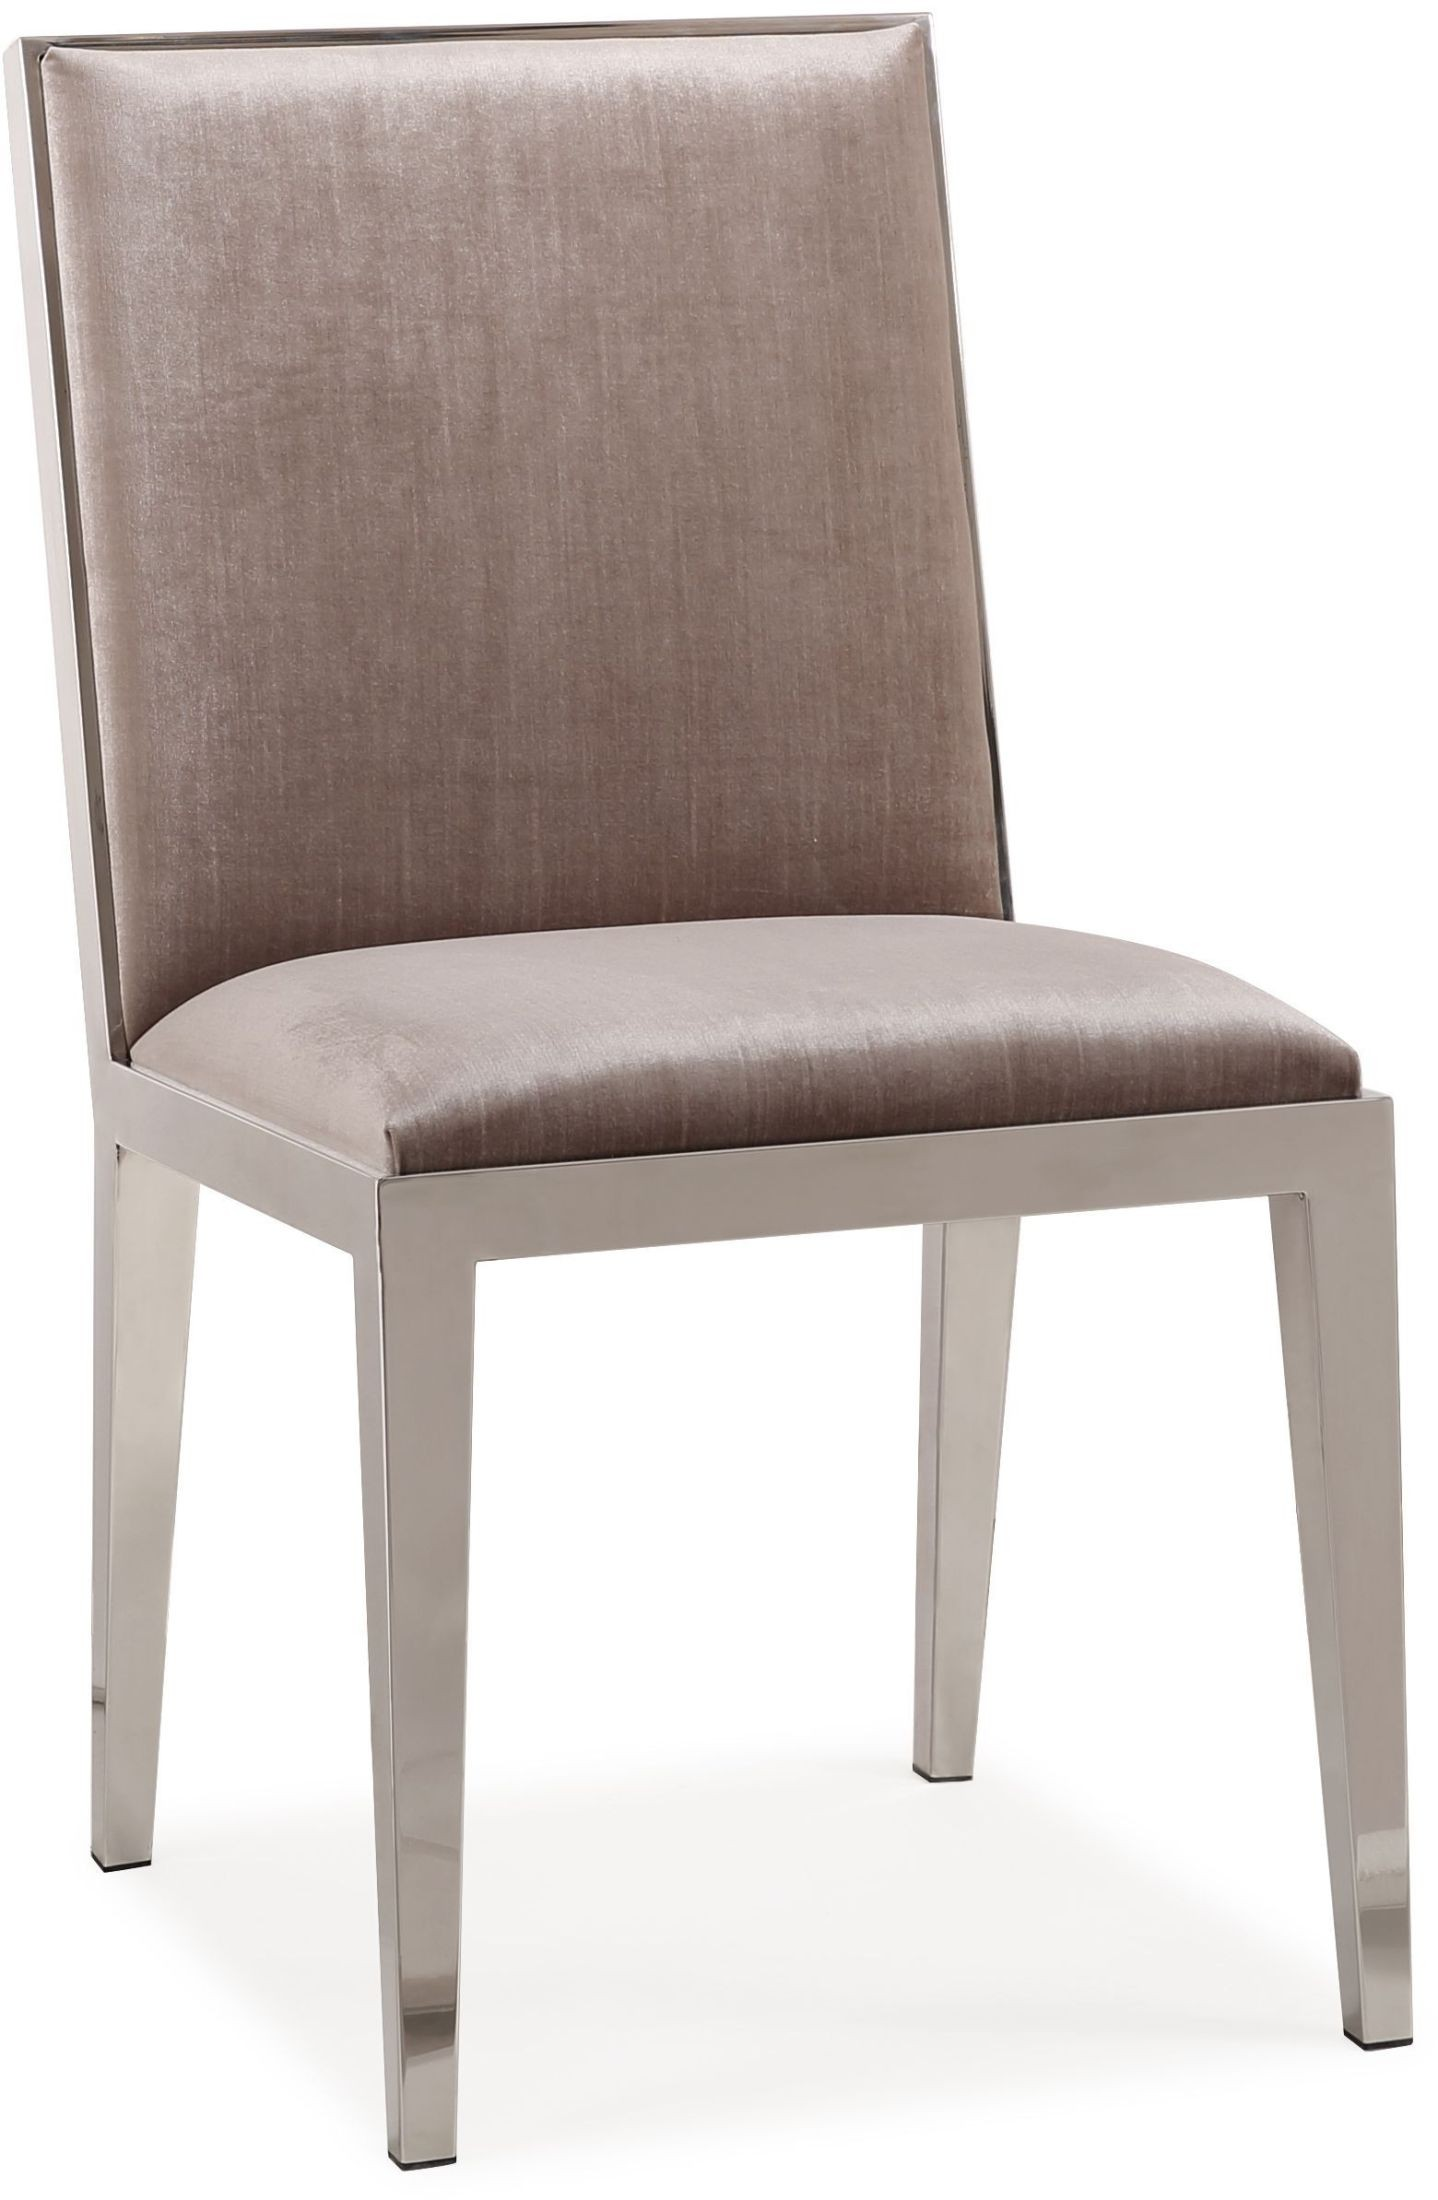 Gray Velvet Chair Riley Gray Velvet Dining Chair D3722 Tov Furniture